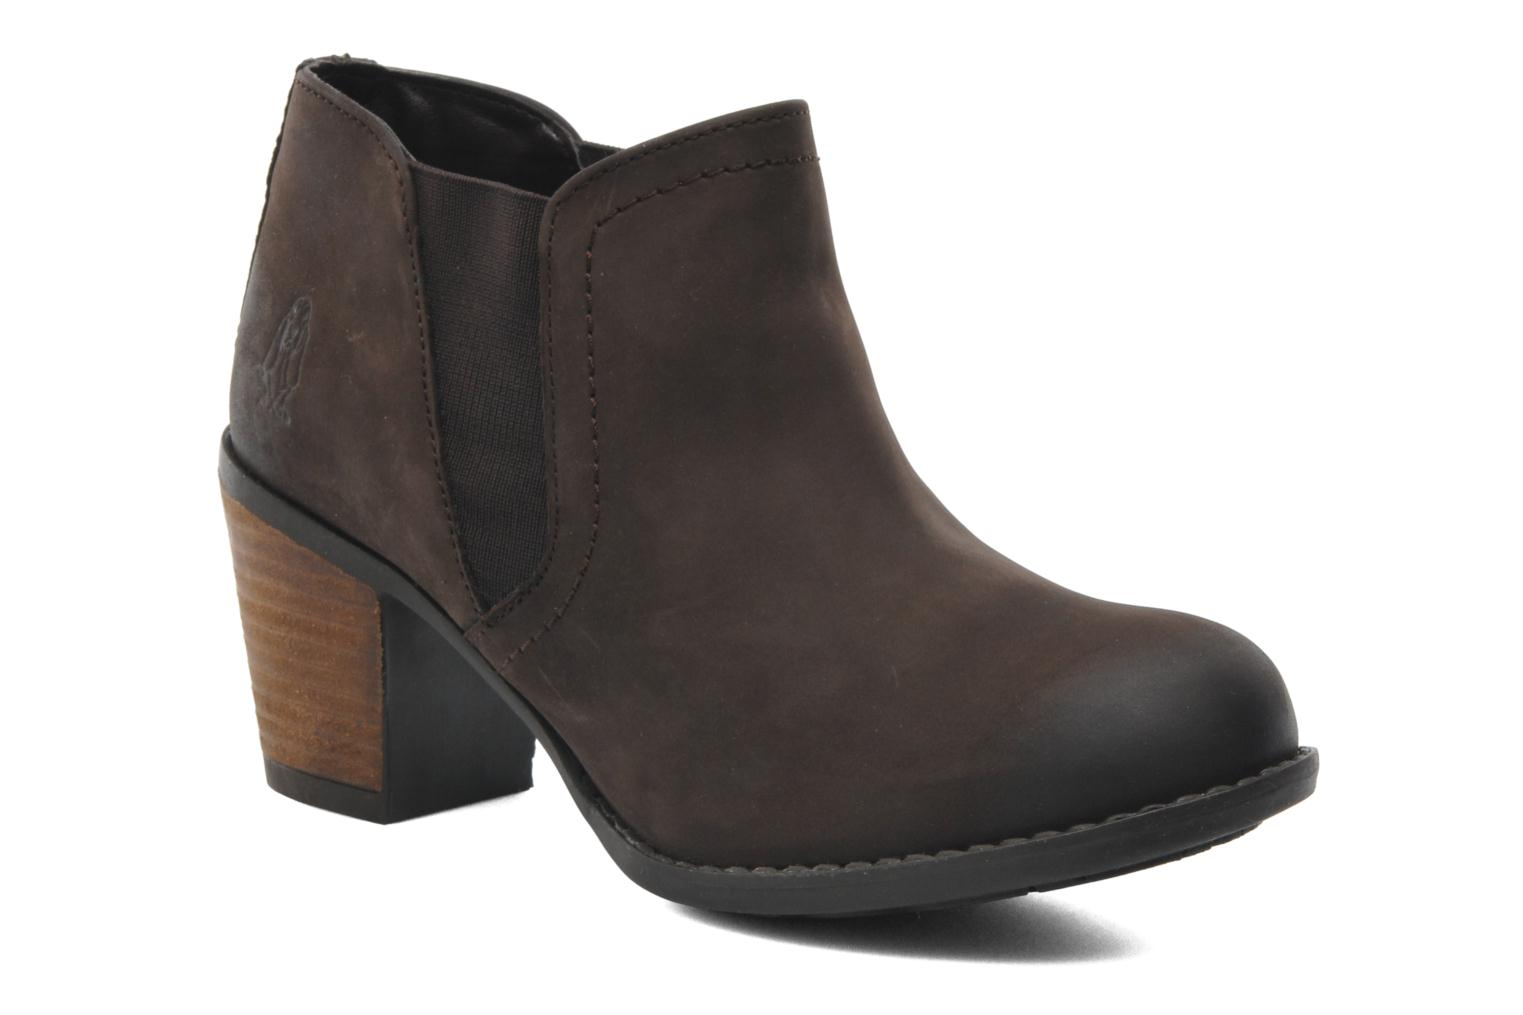 Bottines et boots Hush Puppies Moorland Chelsea Marron vue détail/paire